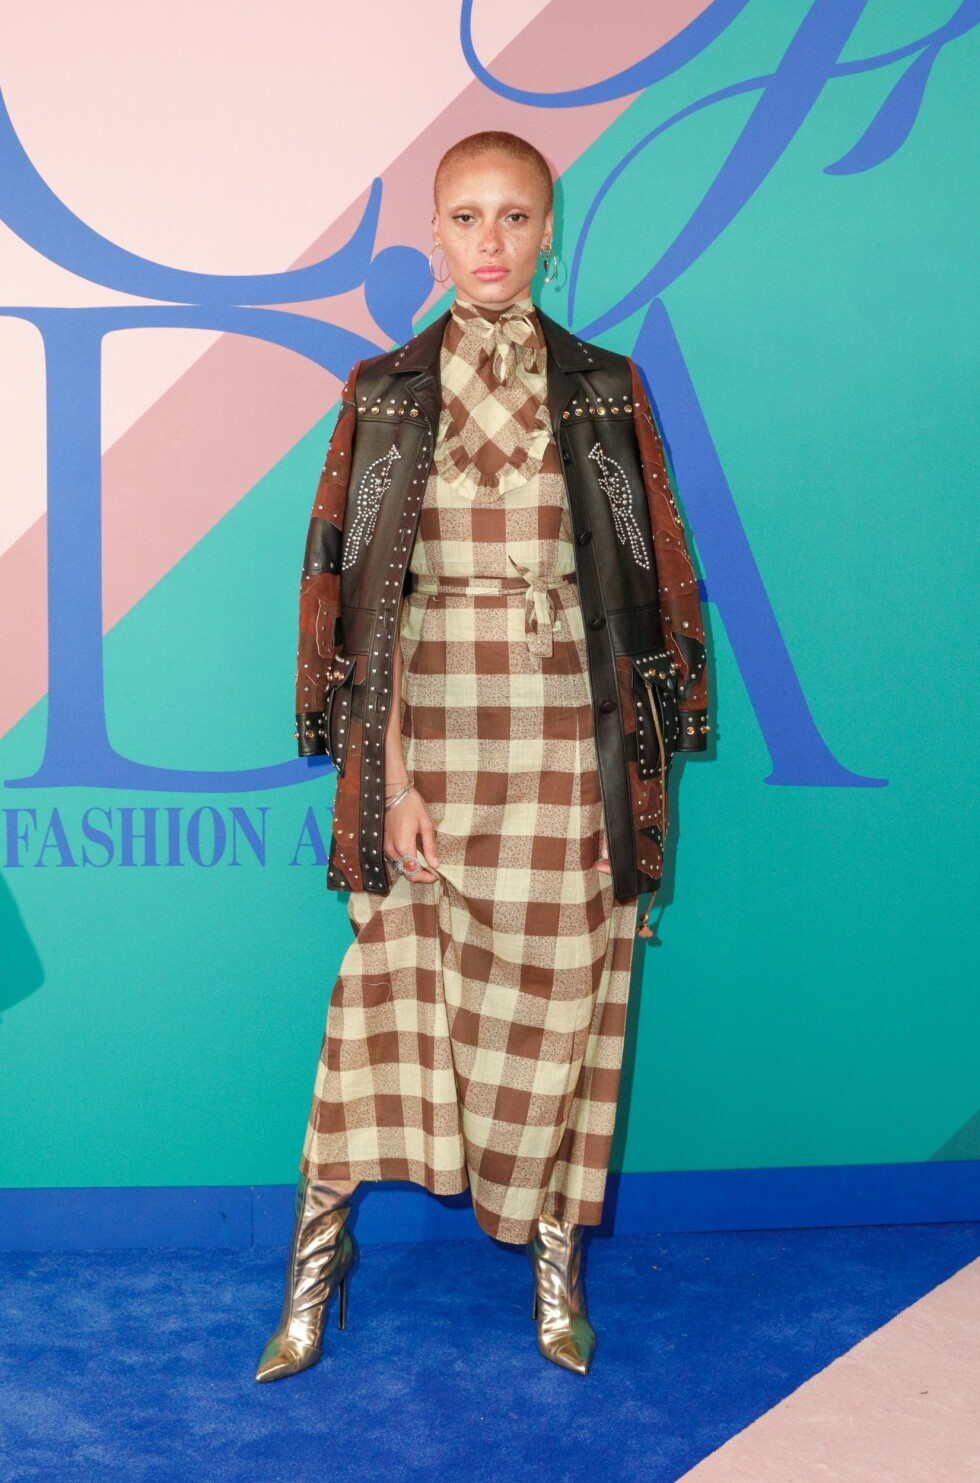 CFDA FASHION AWARDS: Adwoa Aboah Foto: Shutterstock